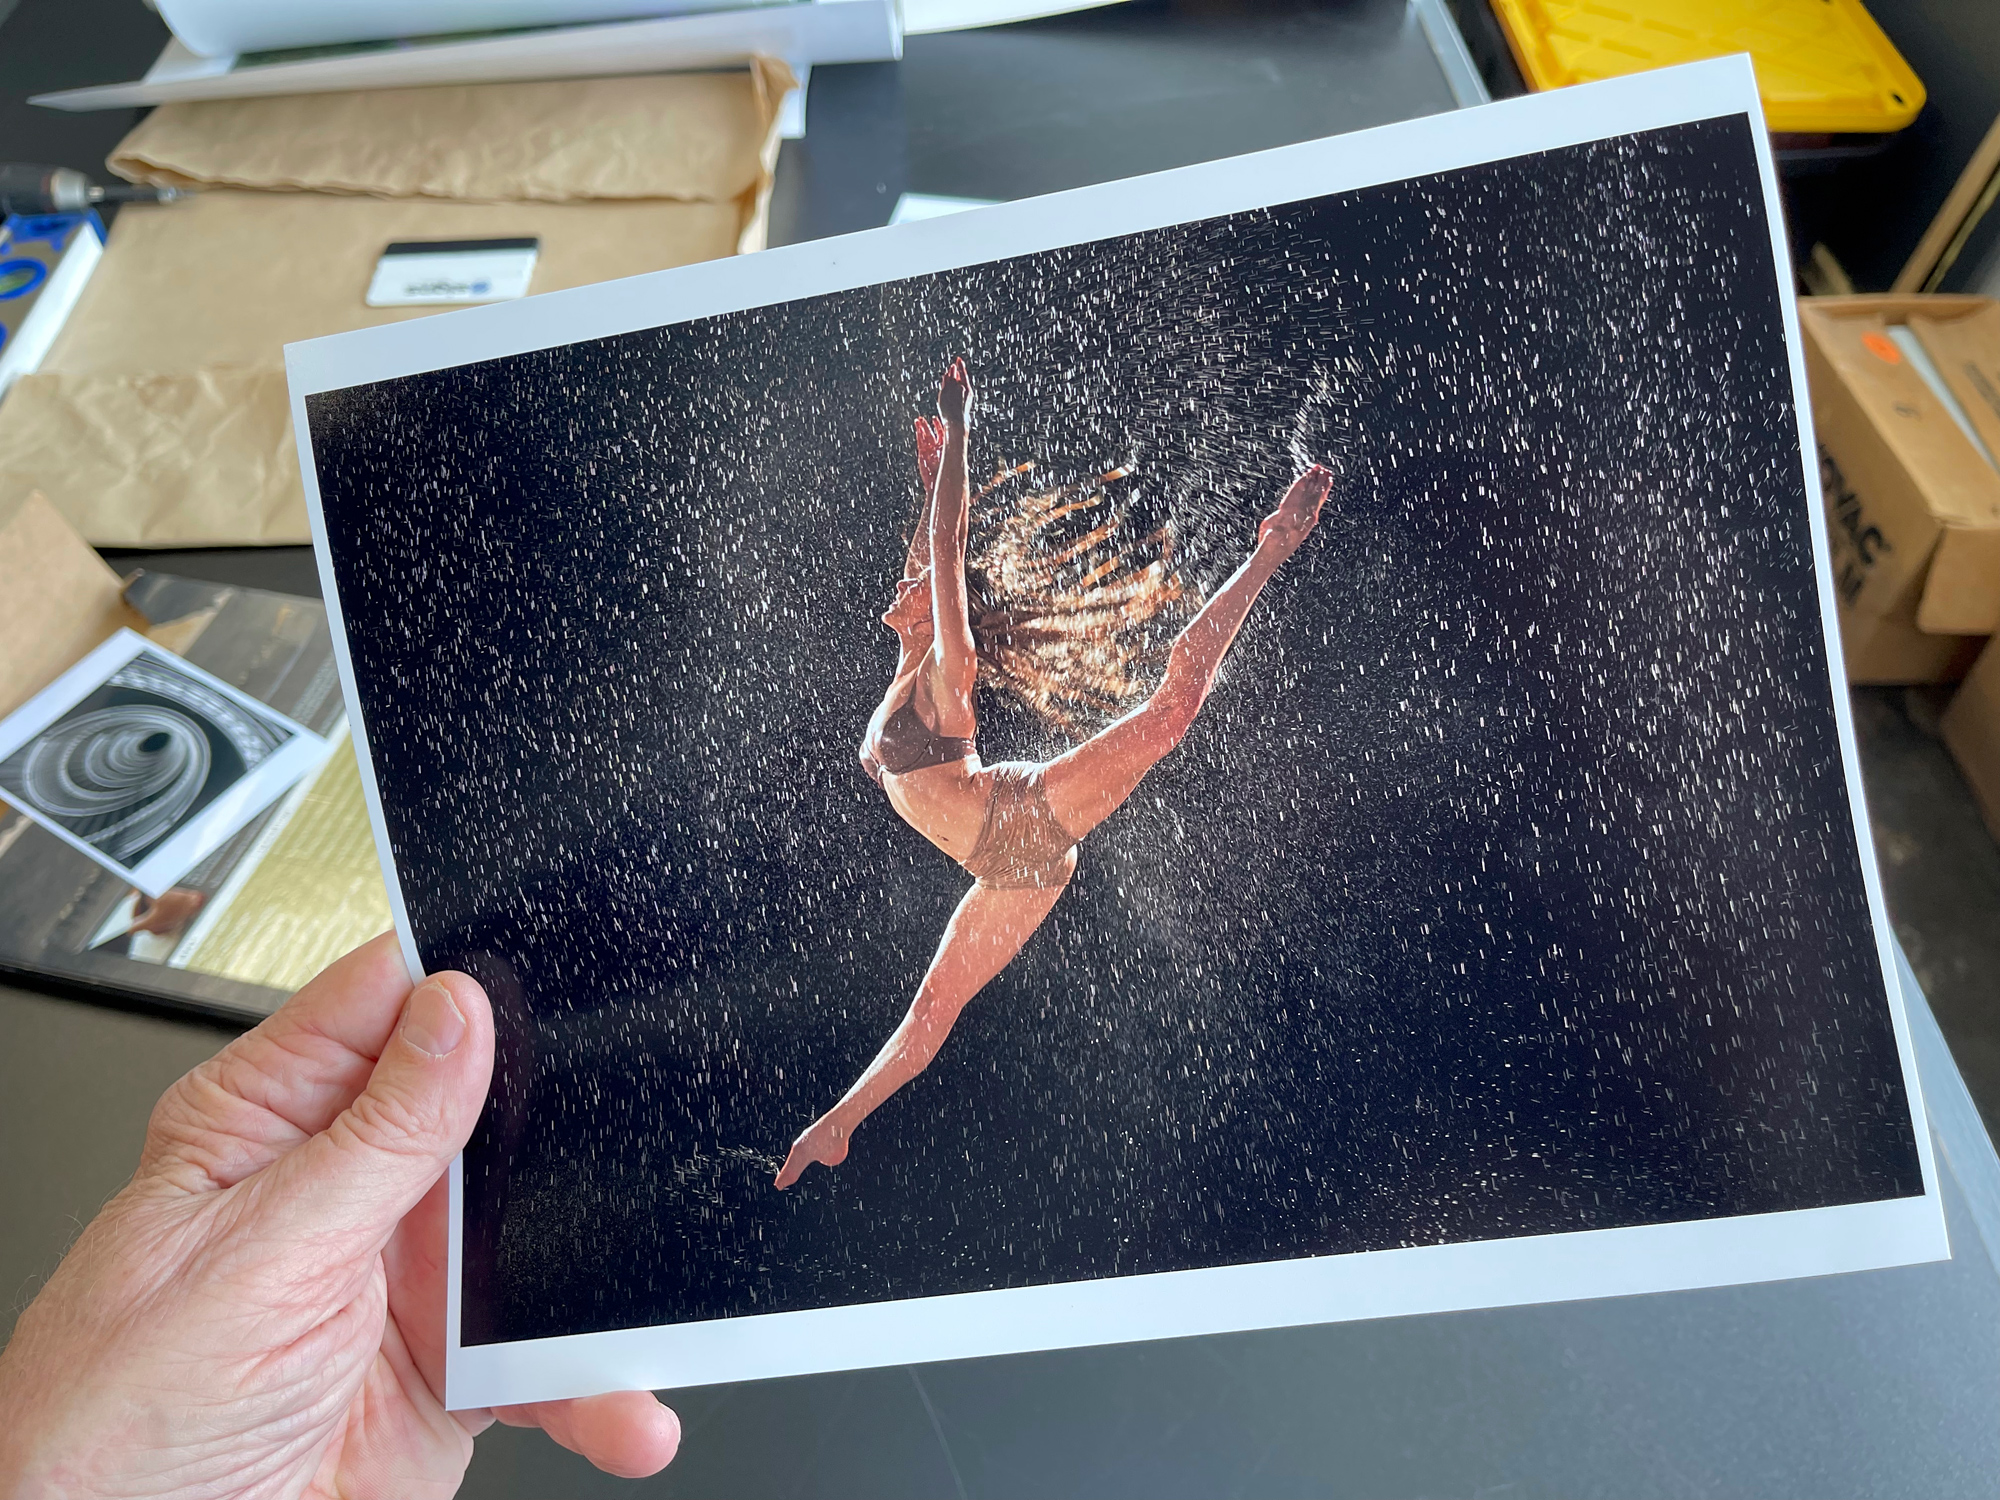 Holding a print in your hands has its own emotional satisfaction attached to it